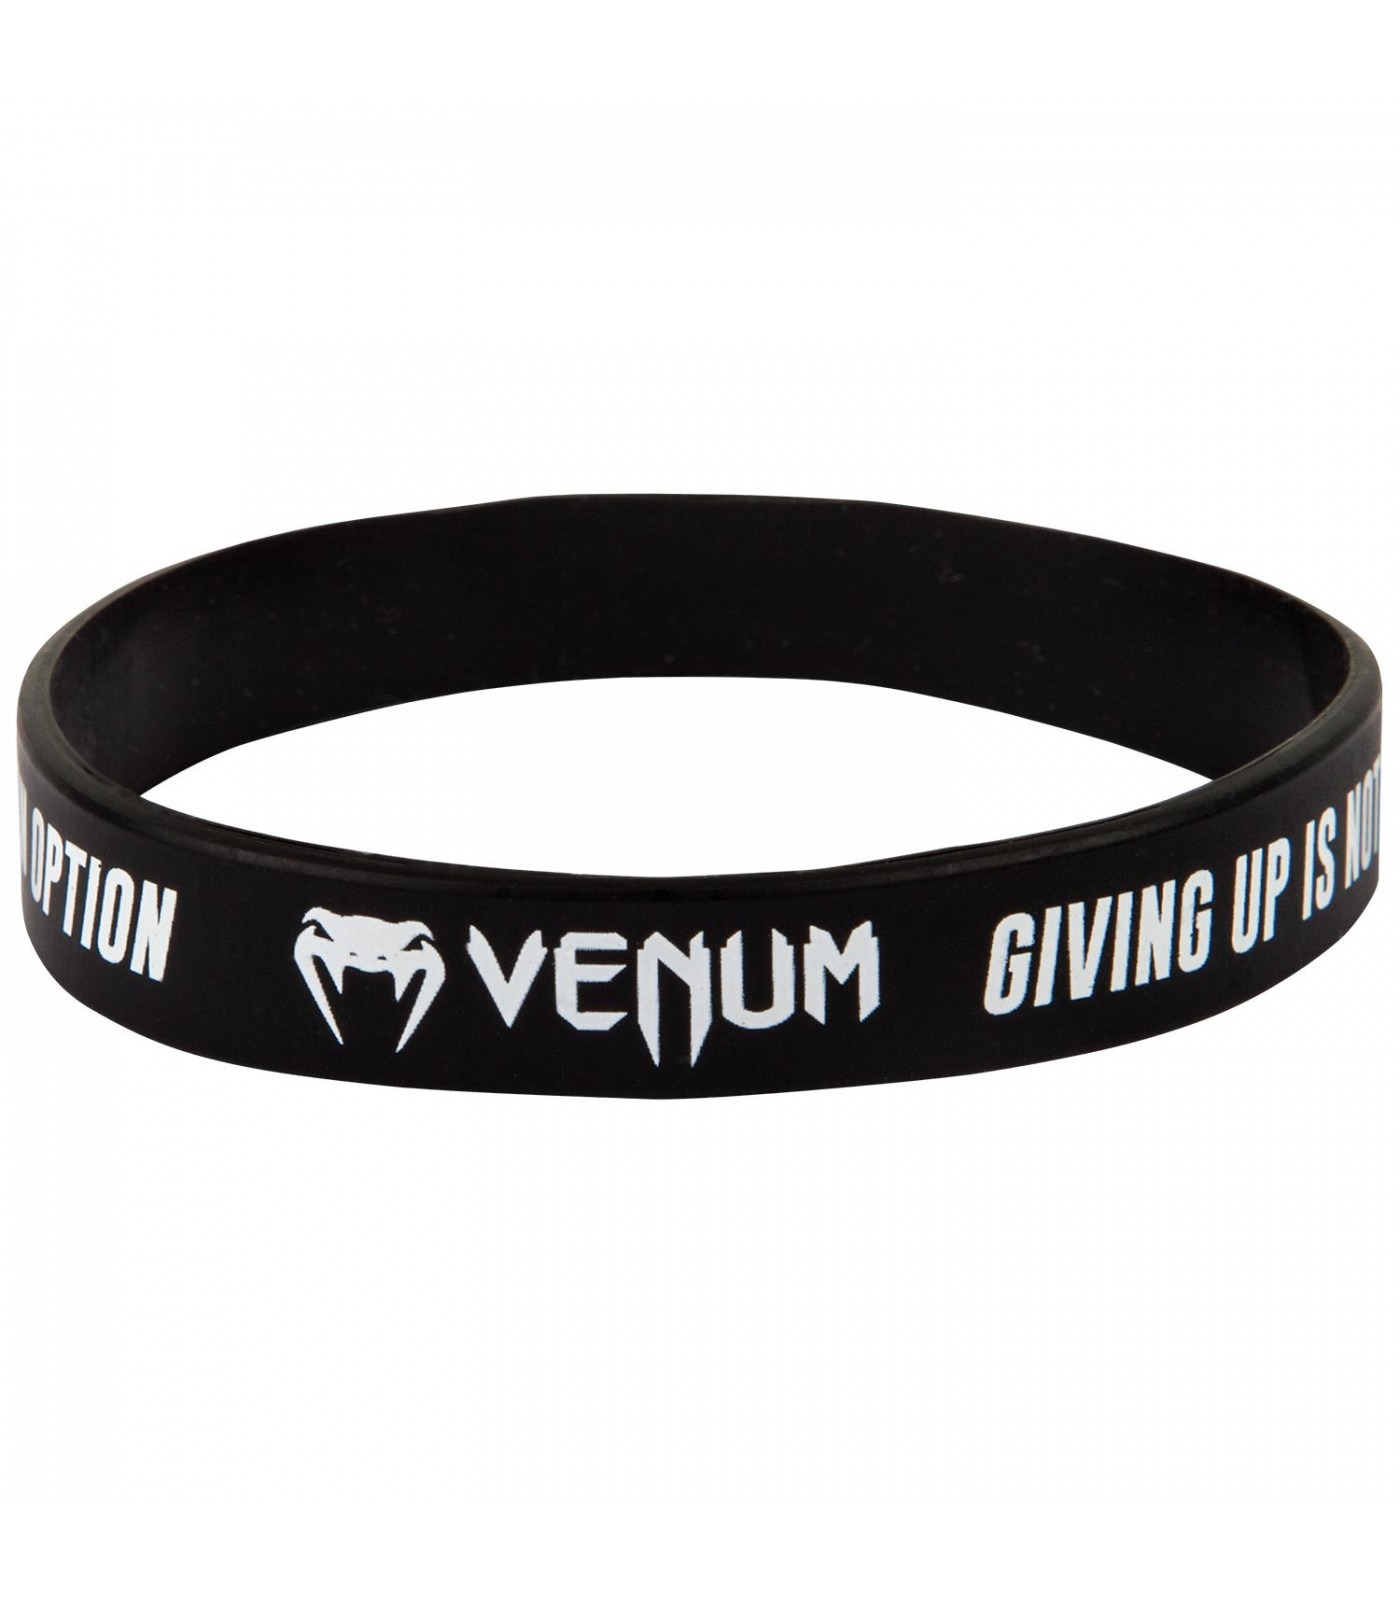 Силиконова Гривна - VENUM RUBBER BAND - GIVING UP - BLACK​